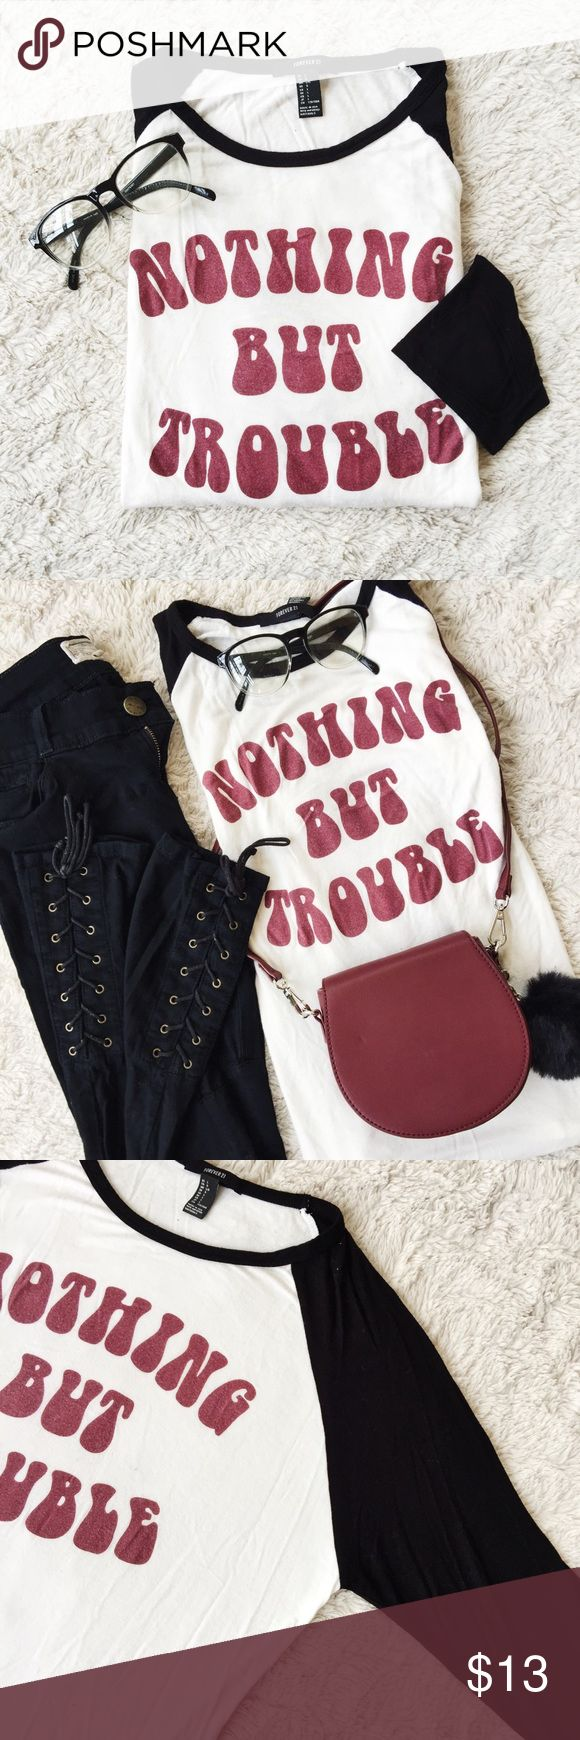 🔺Nothing but Trouble Shirt🔺 Nothing but Trouble Shirt🔺Forever21🔺Worn a few times🔺Love this tee it's soo soft, but I don't wear it often enough to keep it🔺No trades, thank you!!! Forever 21 Tops Tees - Long Sleeve